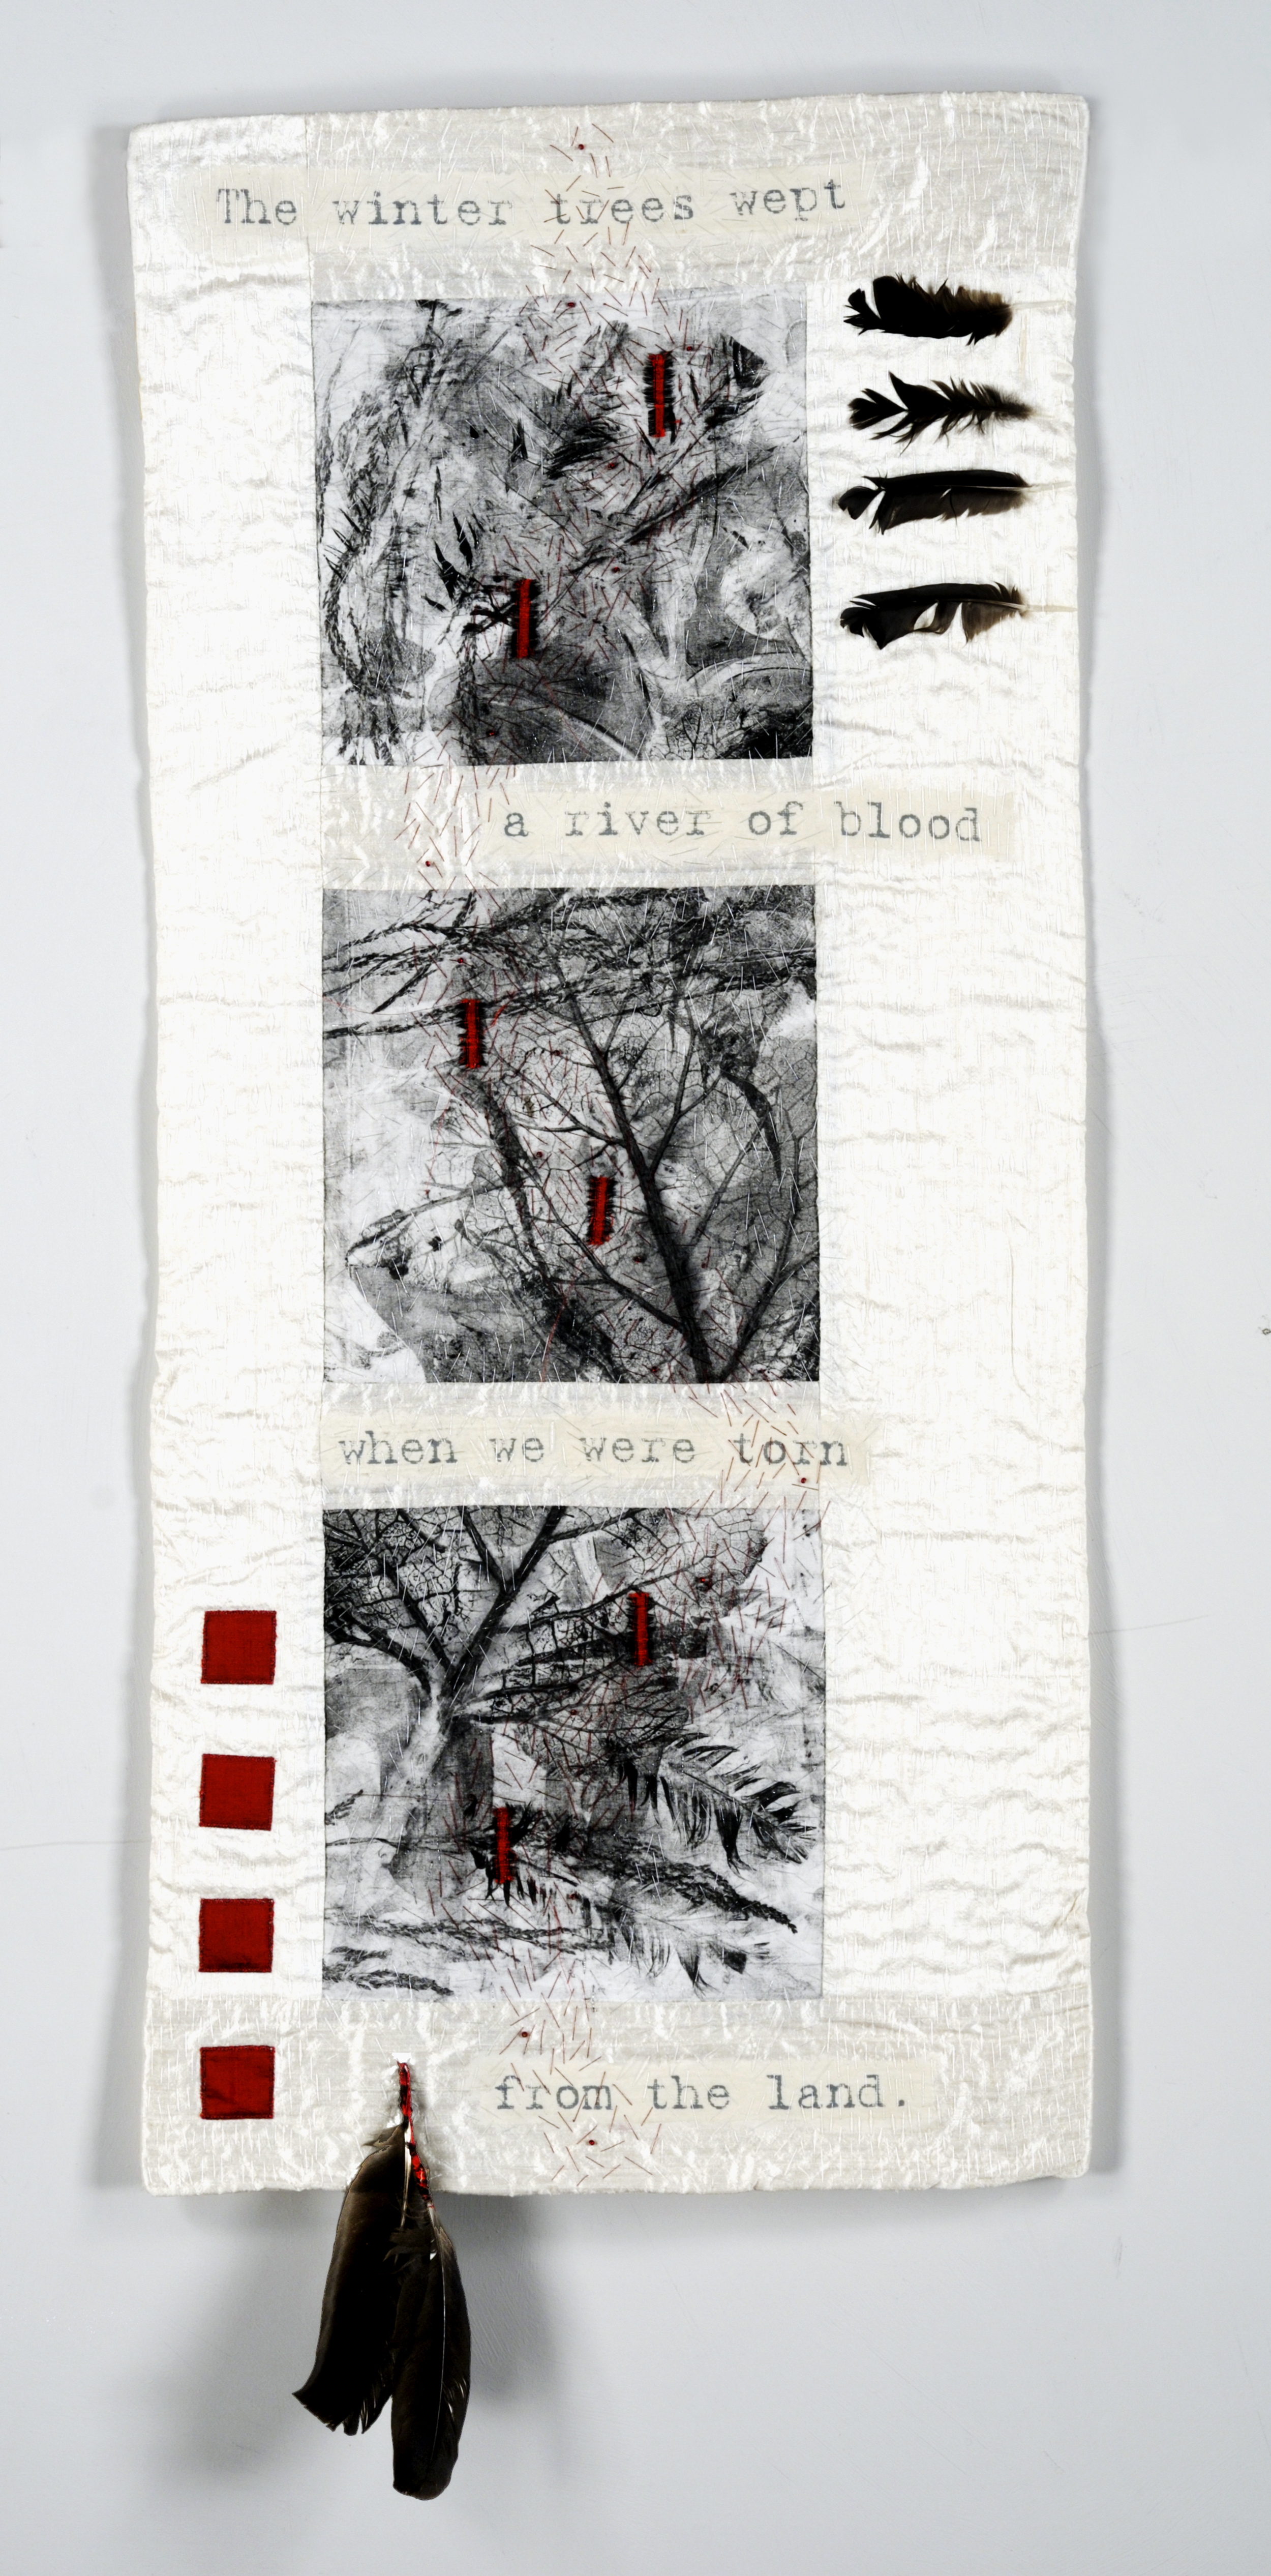 Winter Trees Wept. Silk, Monoprinted Cotton, Beads, Feathers, Paper, 102cmx40cm